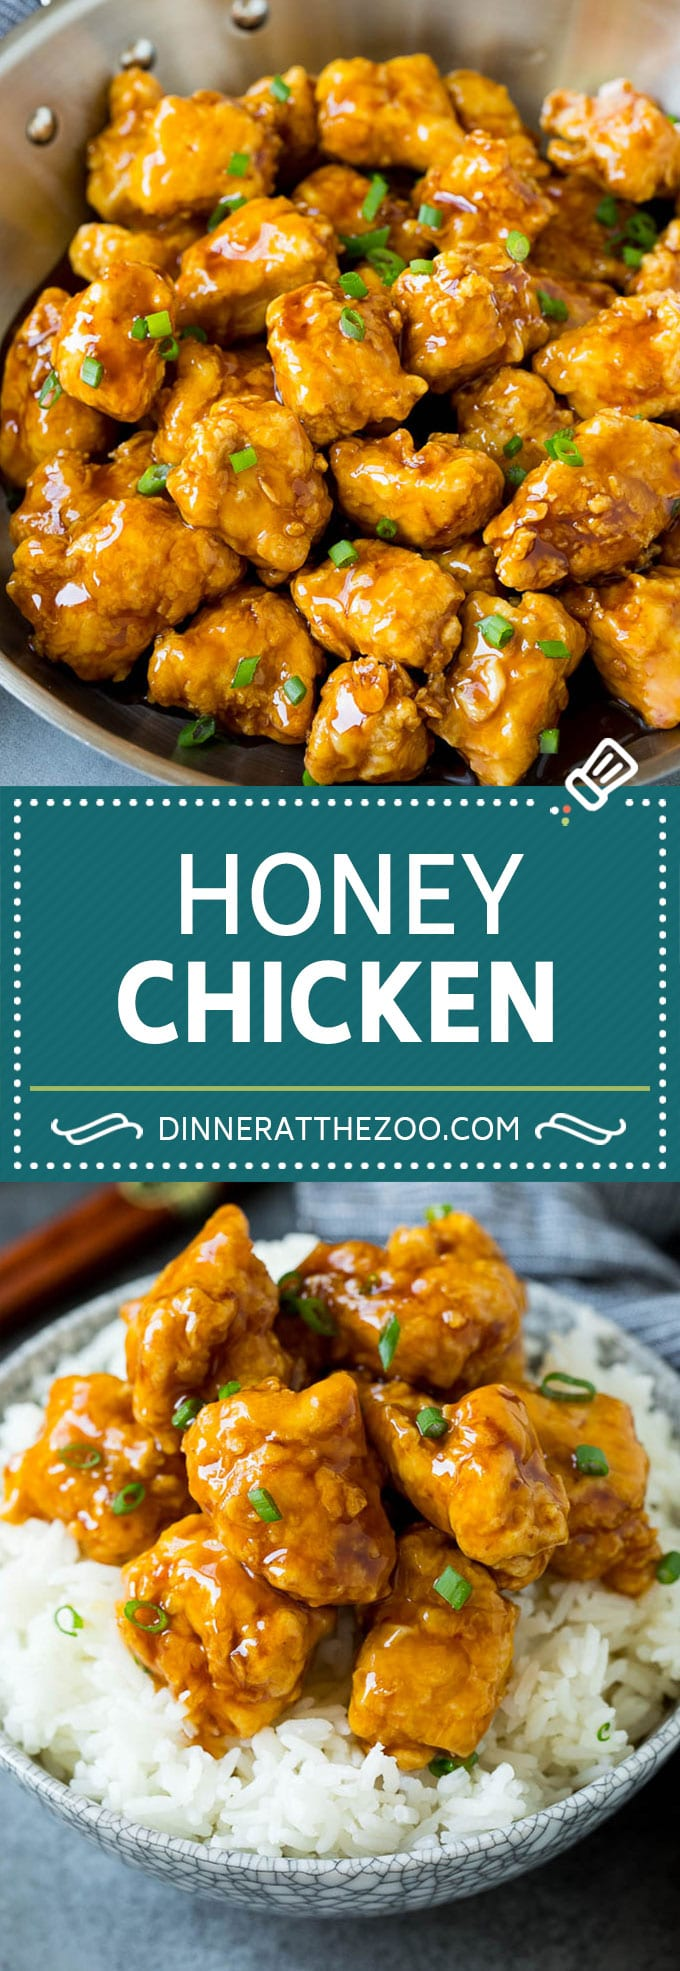 This honey chicken is crispy pieces of chicken breast that are fried to golden brown perfection, then tossed in a sweet and savory honey sauce.